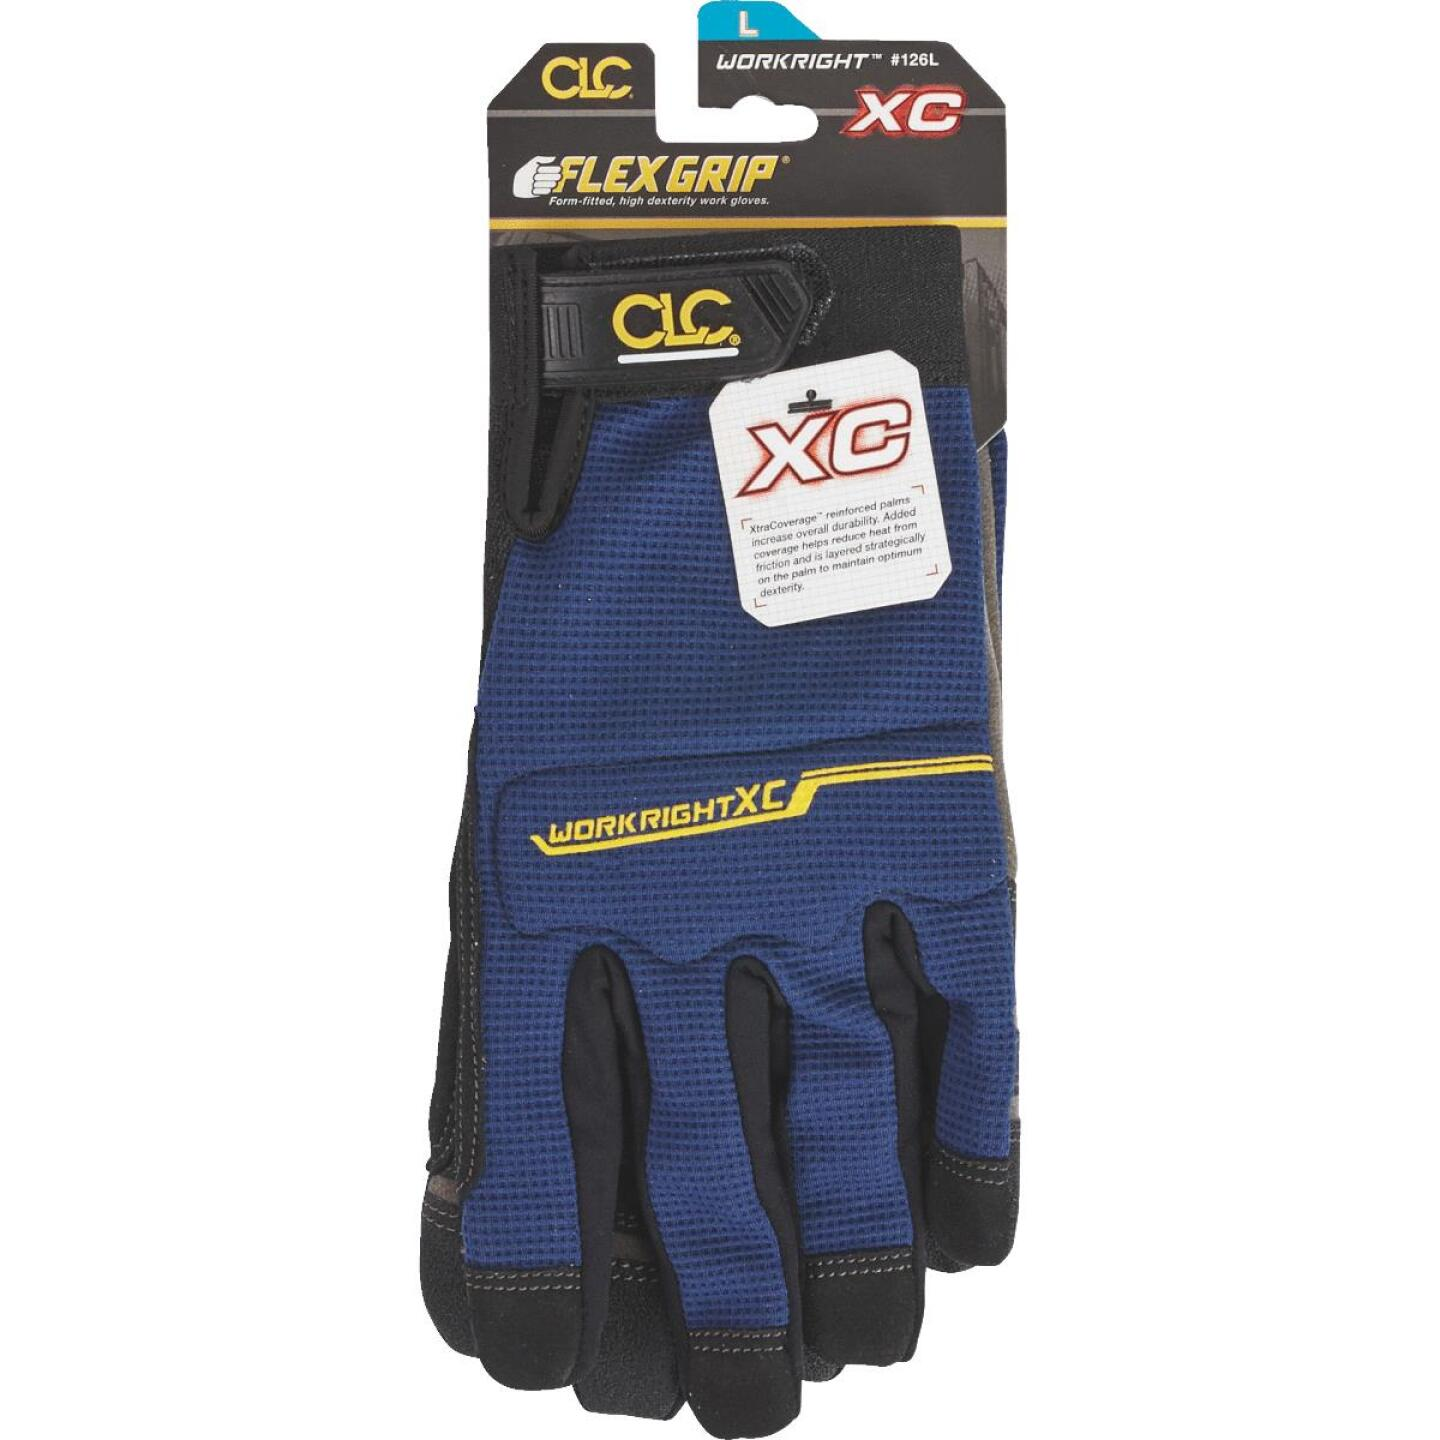 CLC Workright XC Men's Large Synthetic Leather Flex Grip High Performance Glove Image 2